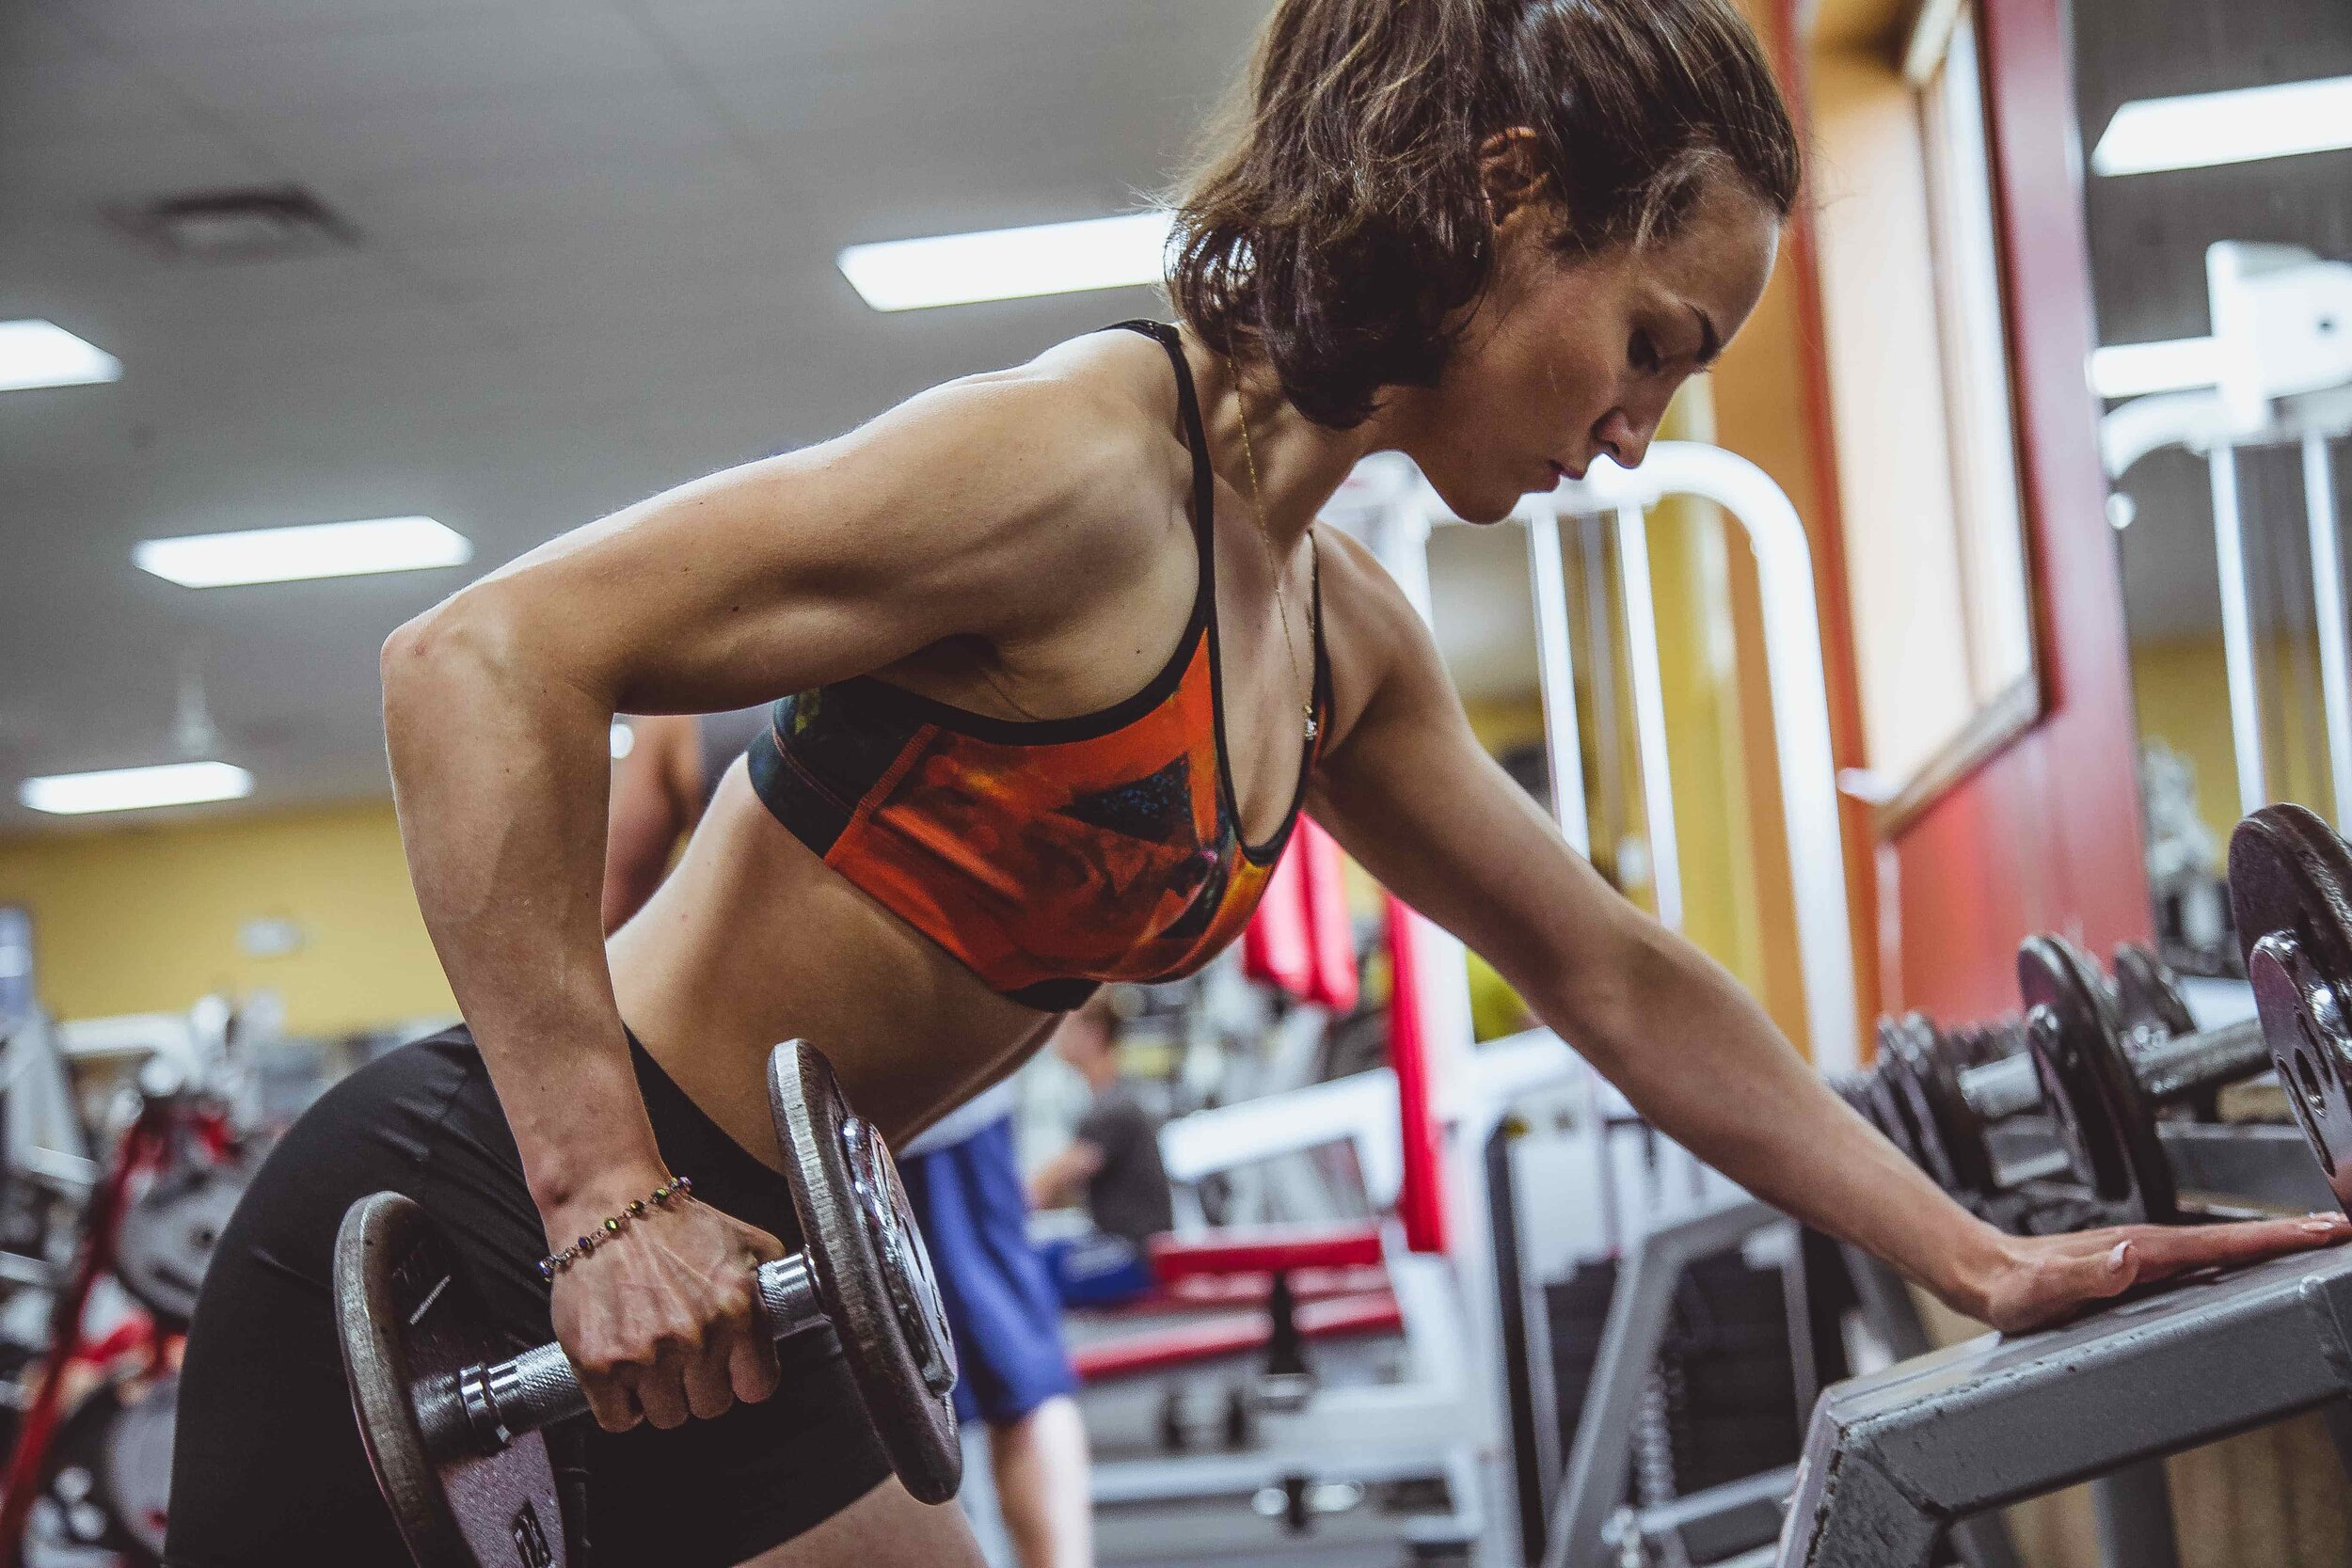 Workout quotes to get you pumped when you need motivation to work out.